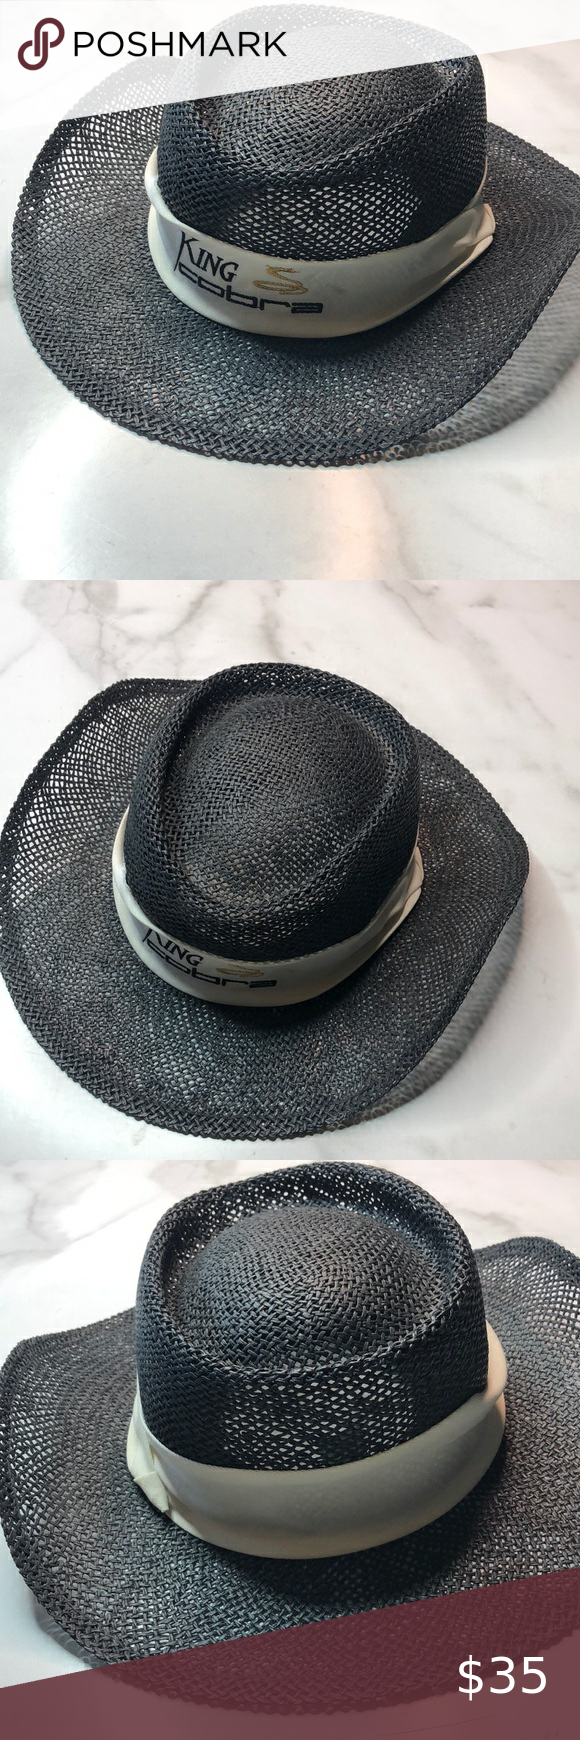 King Cobra Straw Hat L Xl King Cobra Straw Hat Size L Xl King Cobra Accessories Hats Straw Hat Hat Sizes Things To Sell